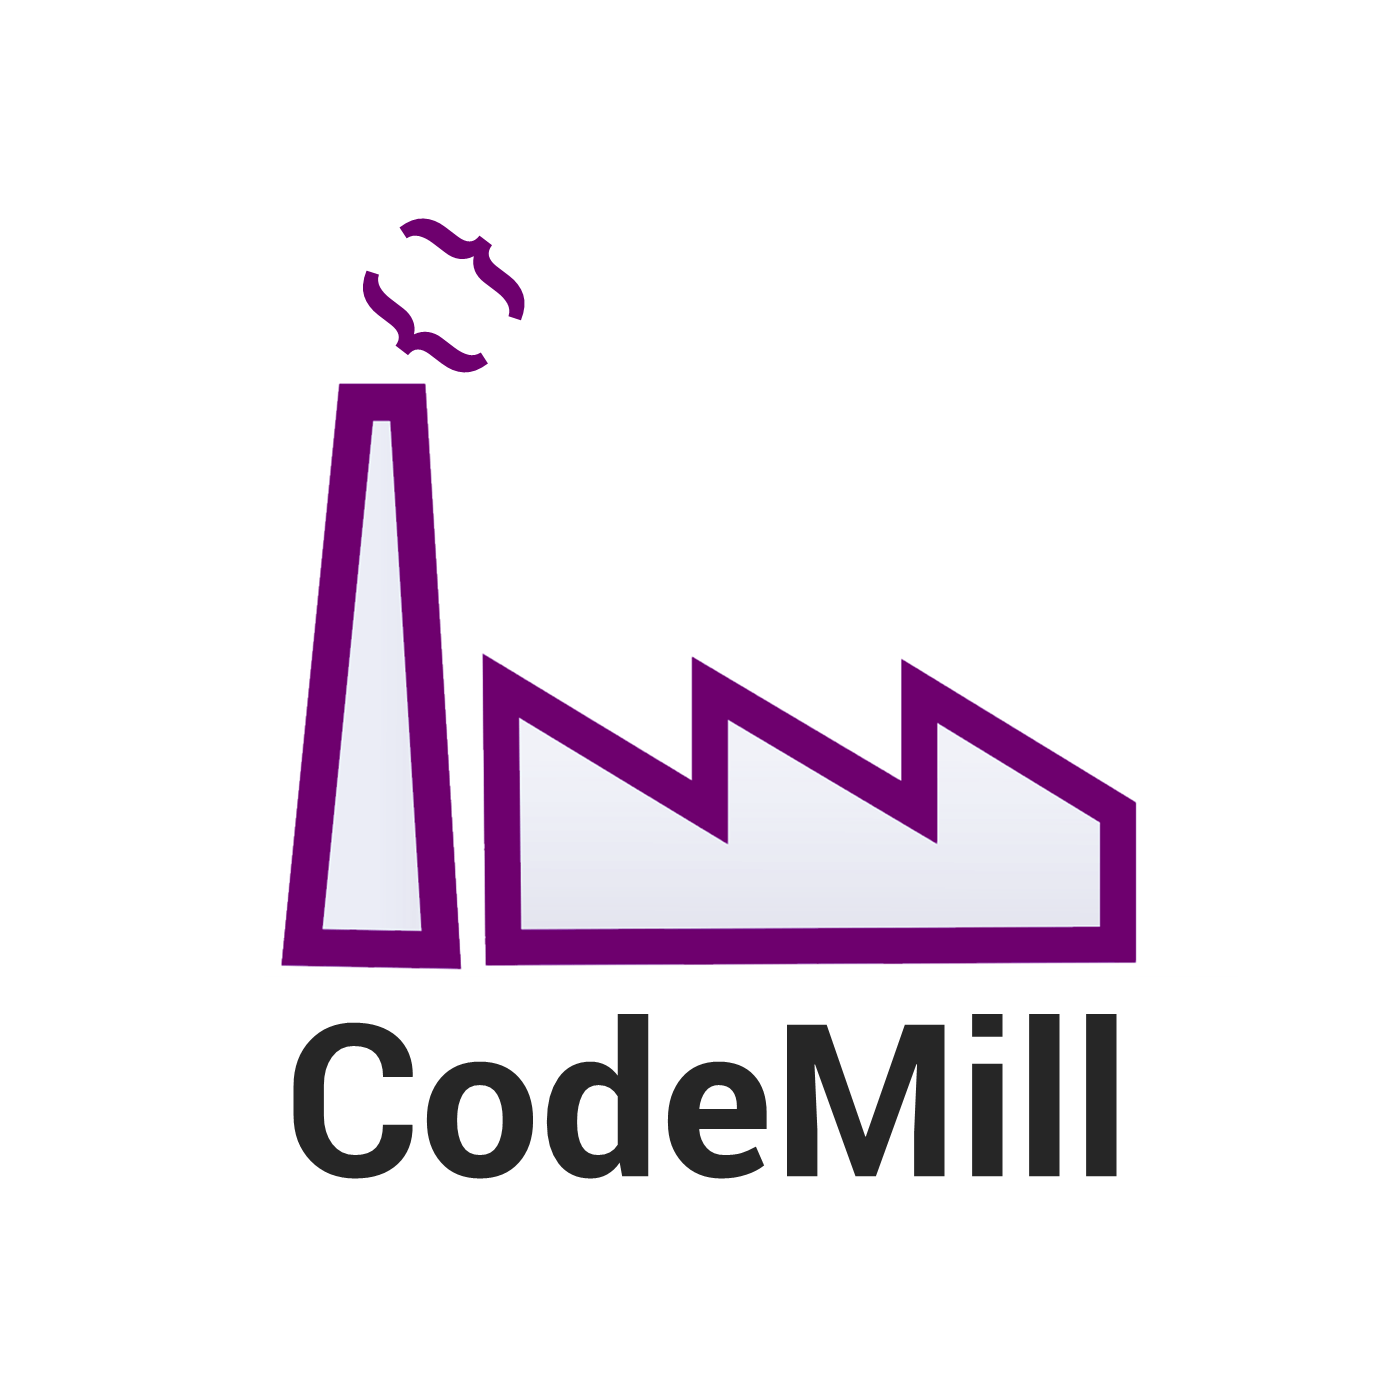 cropped-codemill-logo-square-border.png